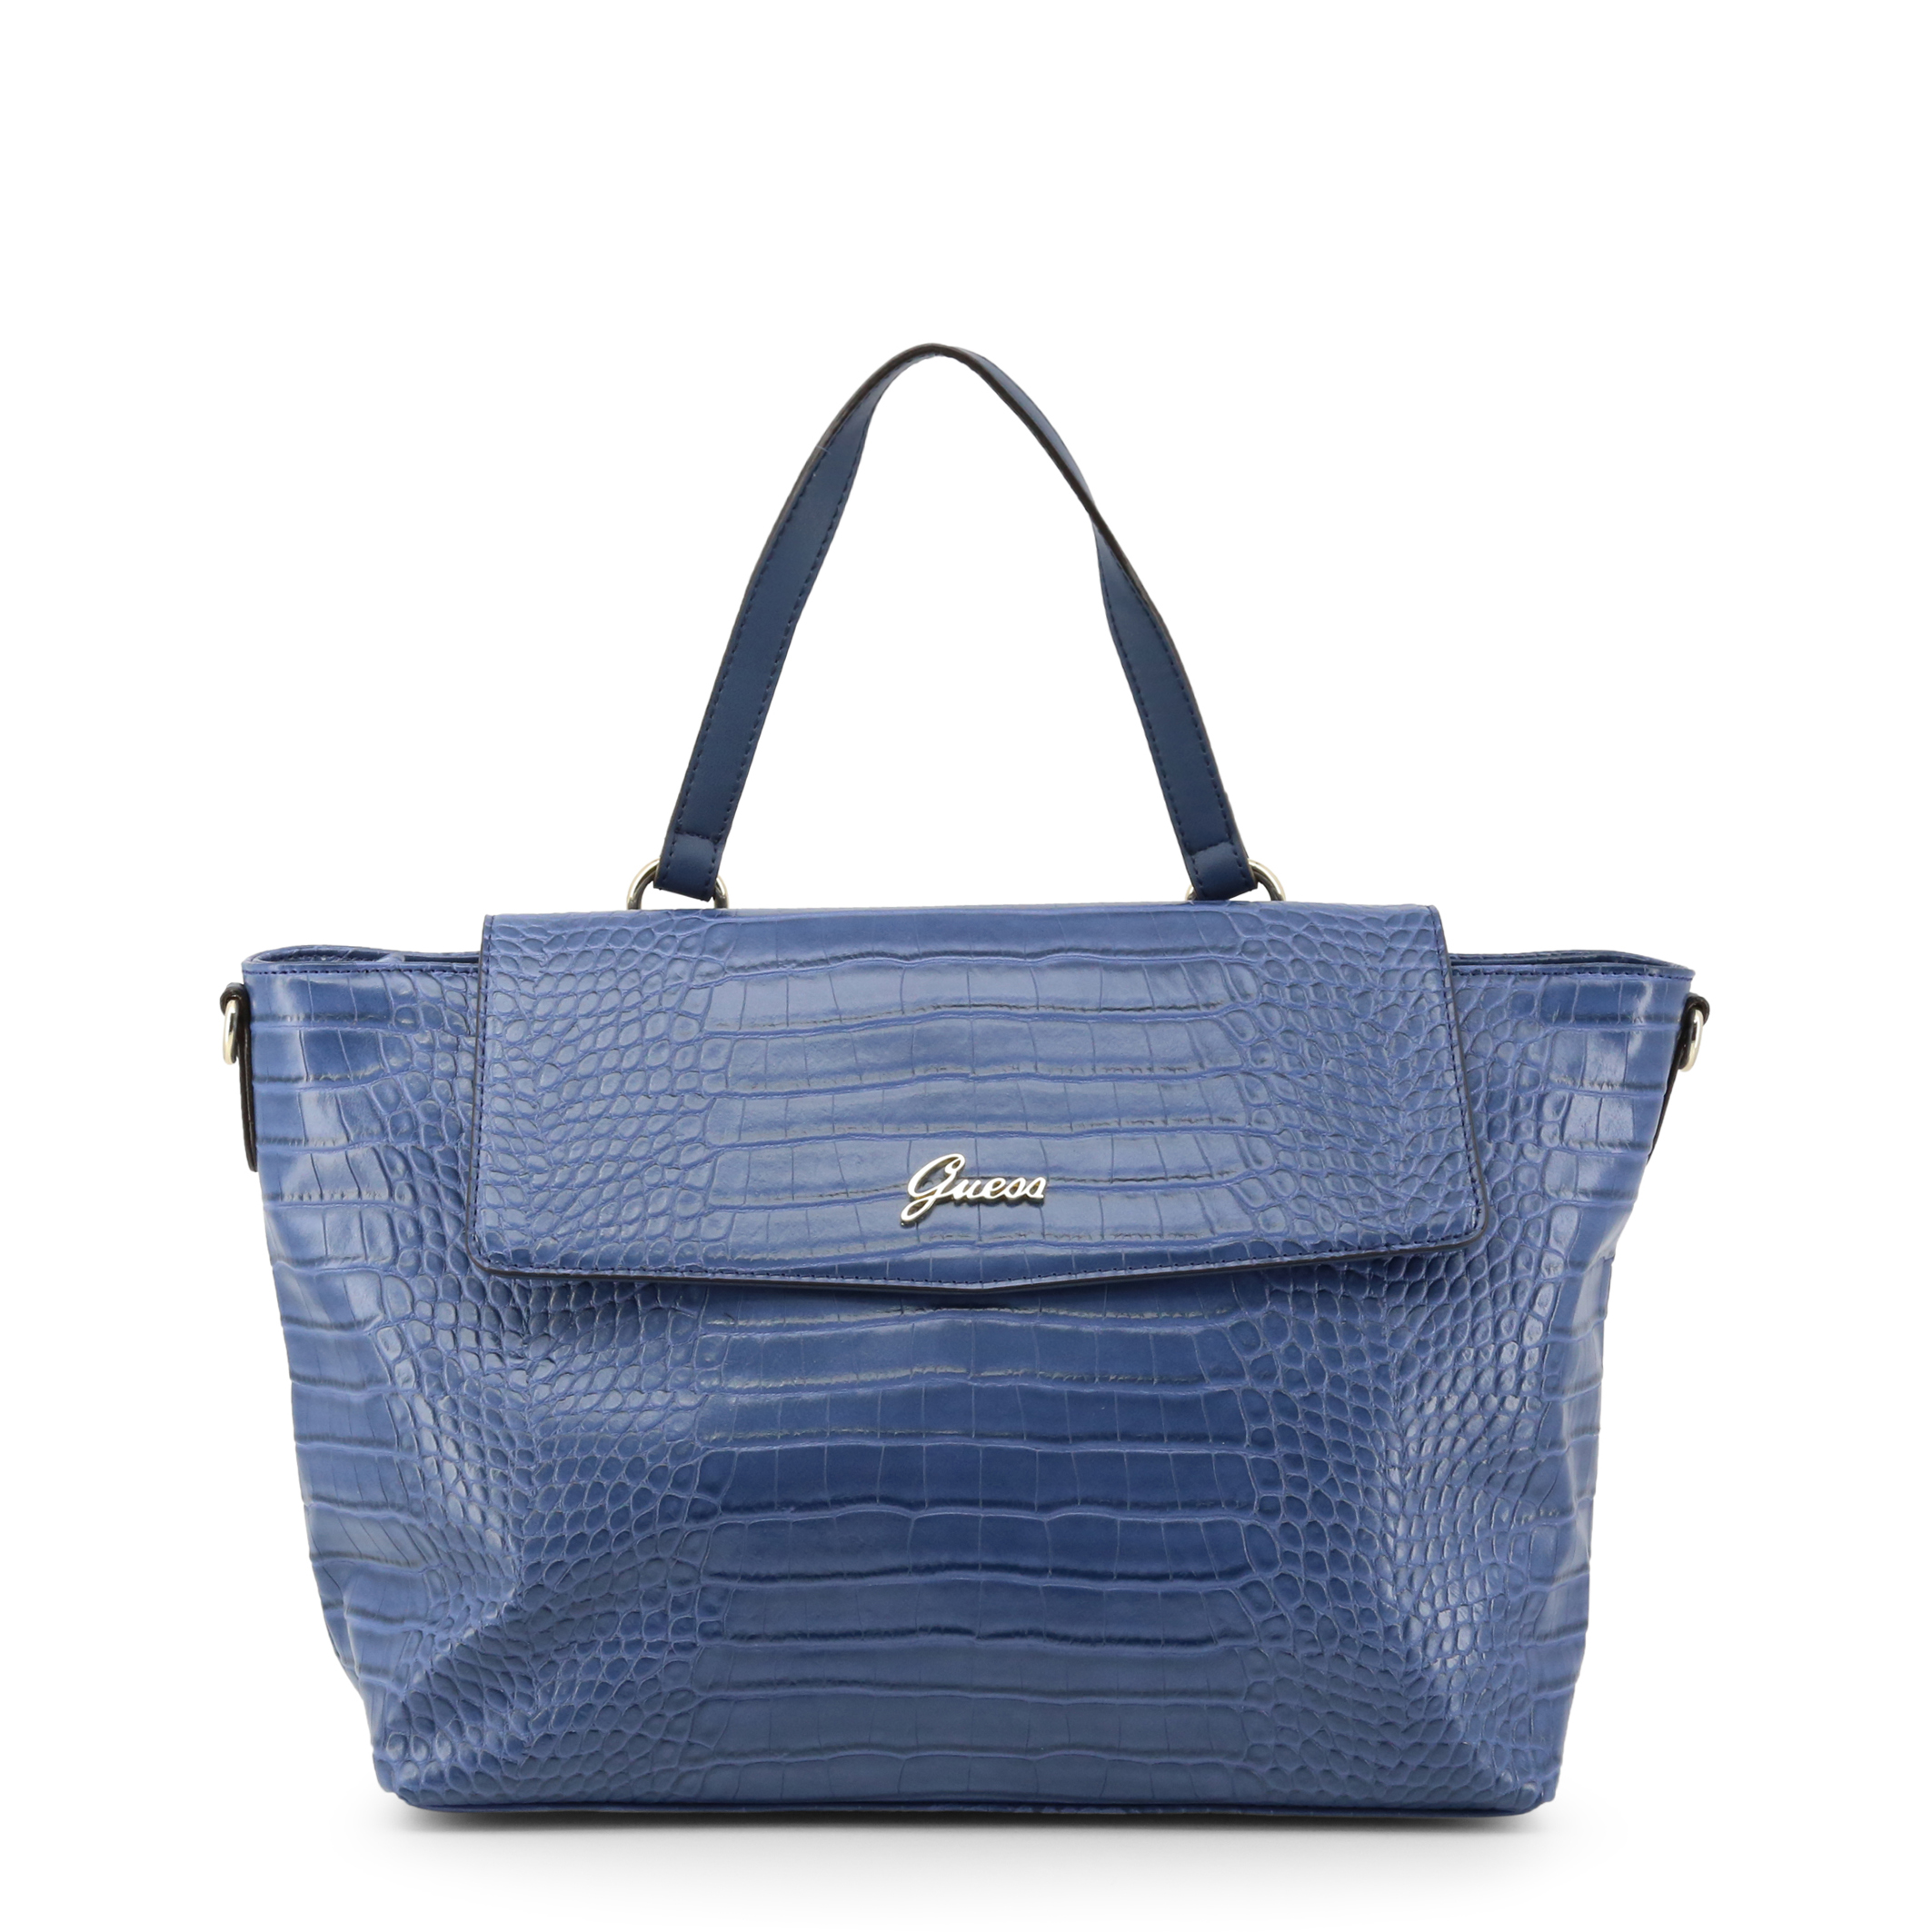 Sac cabas impression croco bleu Guess